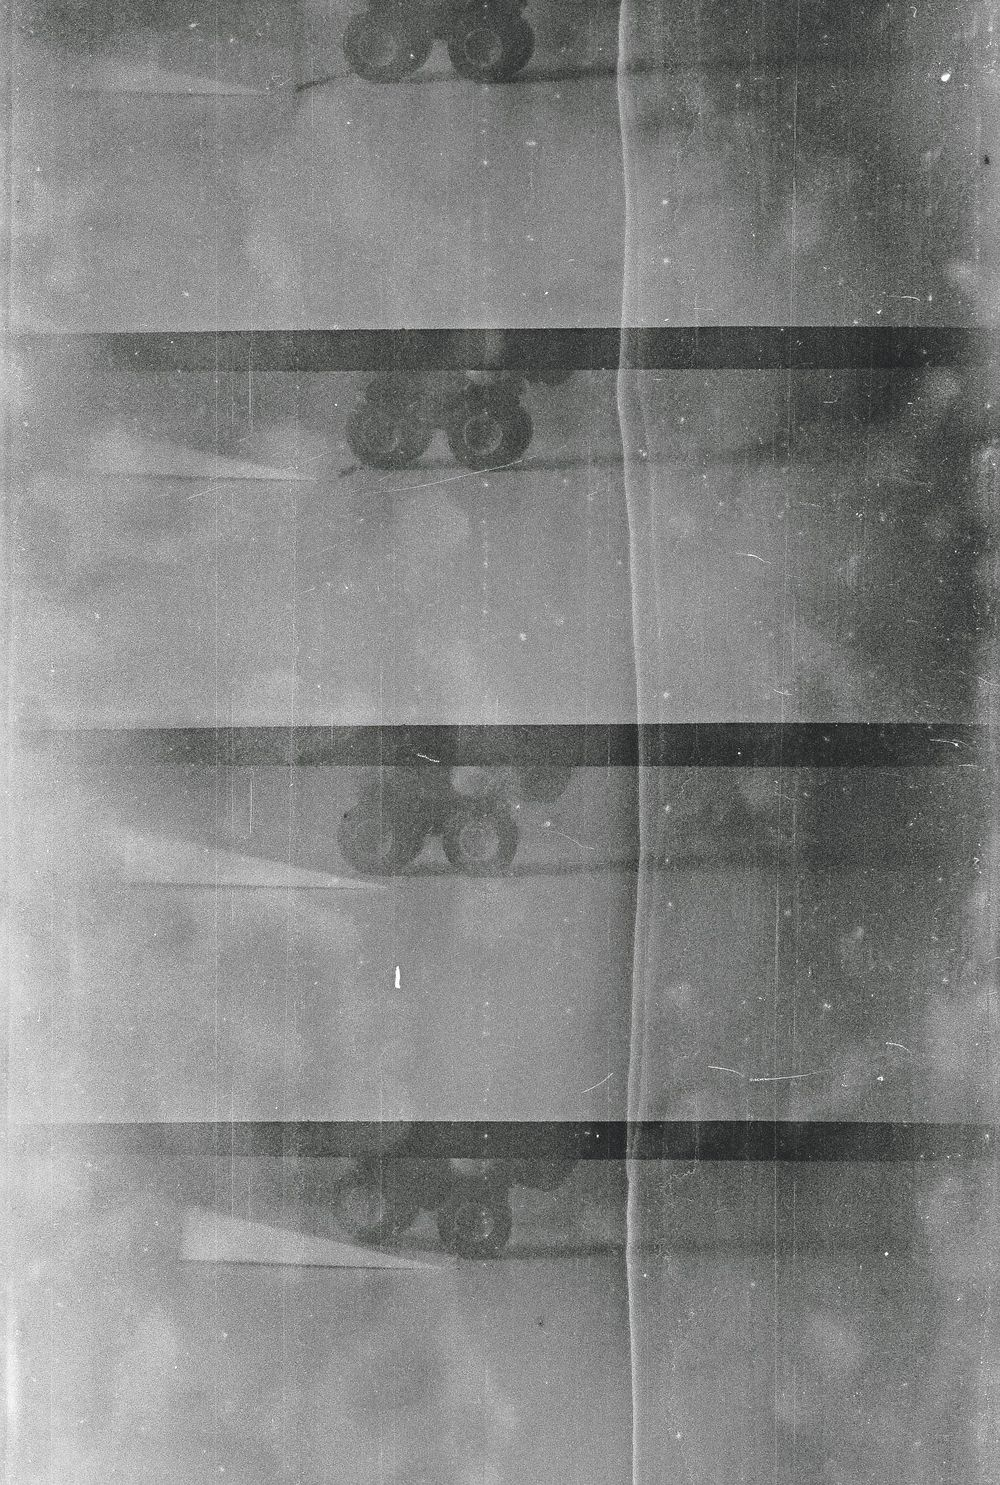 Experimenting with Coffee and Film - image 1 - student project